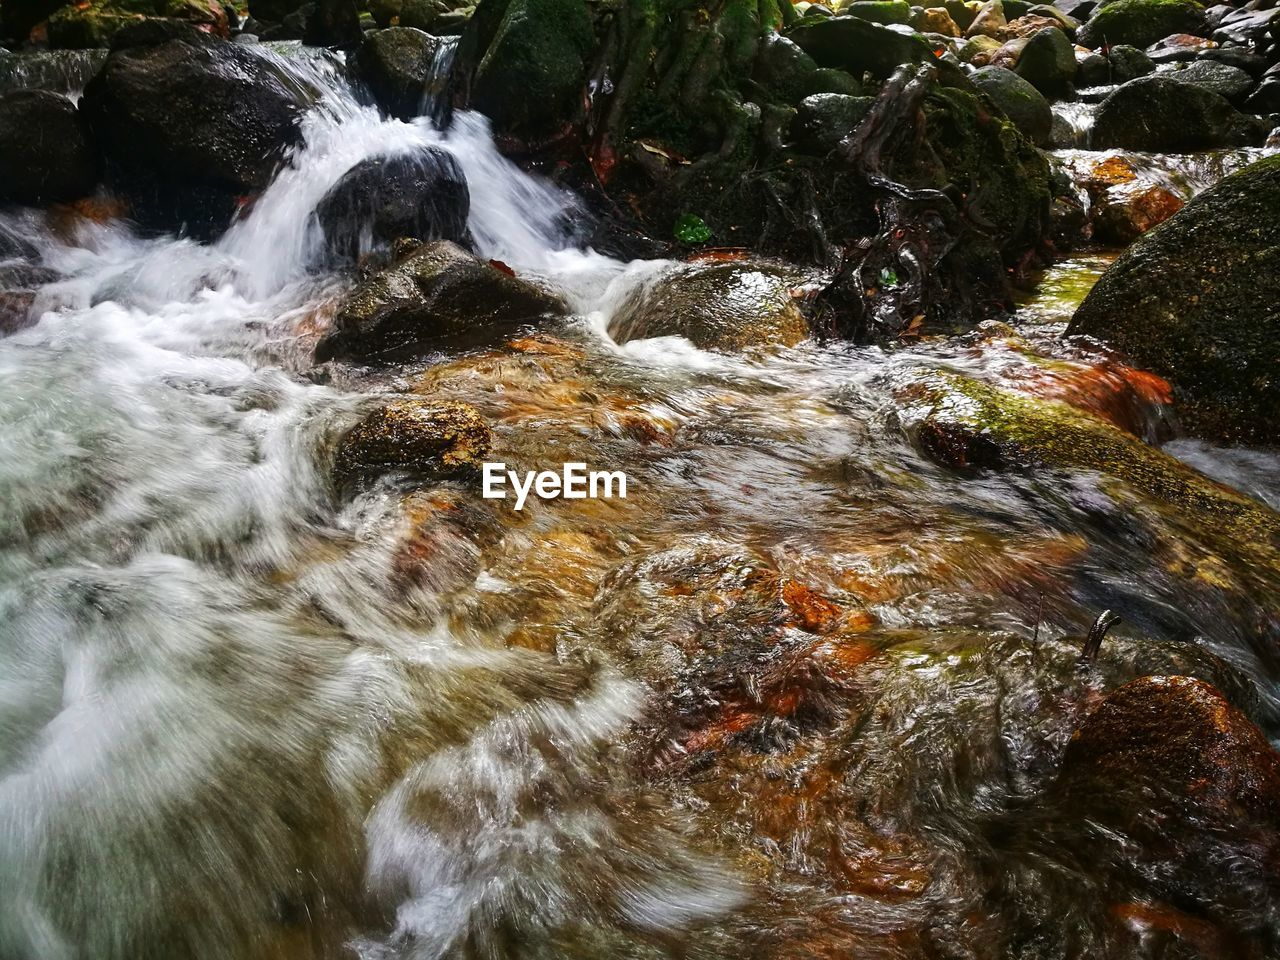 water, motion, flowing water, rock, rock - object, beauty in nature, long exposure, solid, blurred motion, scenics - nature, flowing, nature, day, no people, forest, waterfront, sea, land, sport, stream - flowing water, outdoors, running water